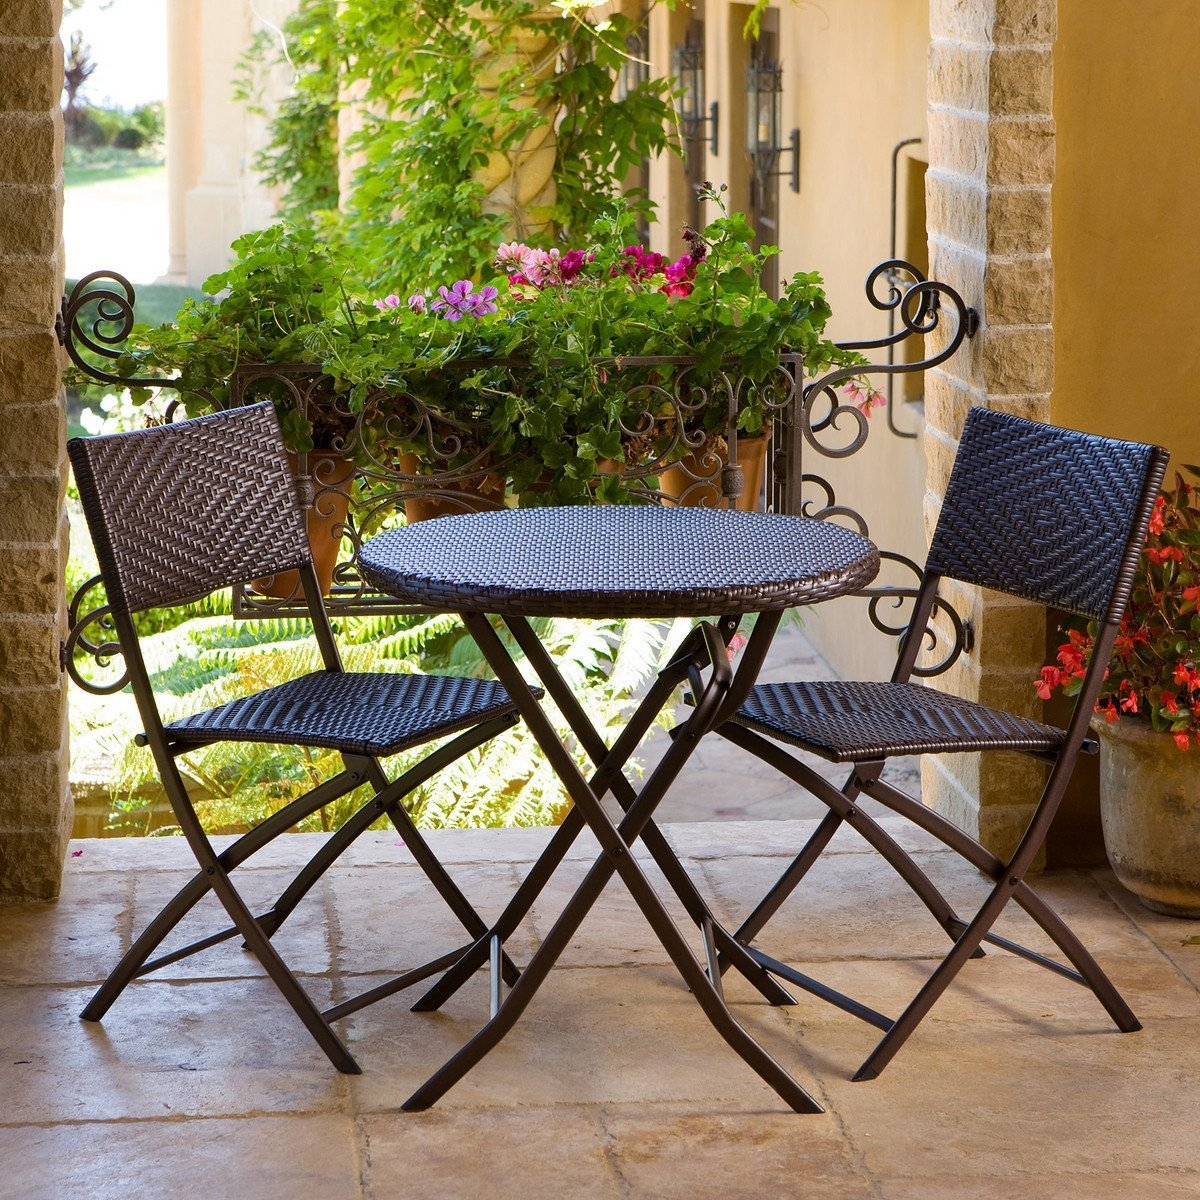 3 Piece Outdoor Bistro Patio Furniture Set in Espresso, RSP3P169 :  This 3 Piece Outdoor Bistro Patio Furniture Set in Espresso allows you to entertain with distinction and charm. Each of the three piece Bistro set collapses for easy storage or portability. The 28-inch diameter table is large enough for dining or support for elegant entertaining. The chairs are 32-inch high at the back and the seats are 18.5-inch wide and 17-inch deep and are weight rated to 275 lbs. The woven diamond pattern of the polyethylene resin rattan material is handsome in any setting and easy to clean with mild soap and water. The recyclable resin wicker is hand stretched over a lightweight steel frame yet durable construction. Matches the RST Outdoor Collection. Uv, weather and fade resistant holds up great in salt and chlorinated environments perfect for coastal living; Strong, lightweight steel frames